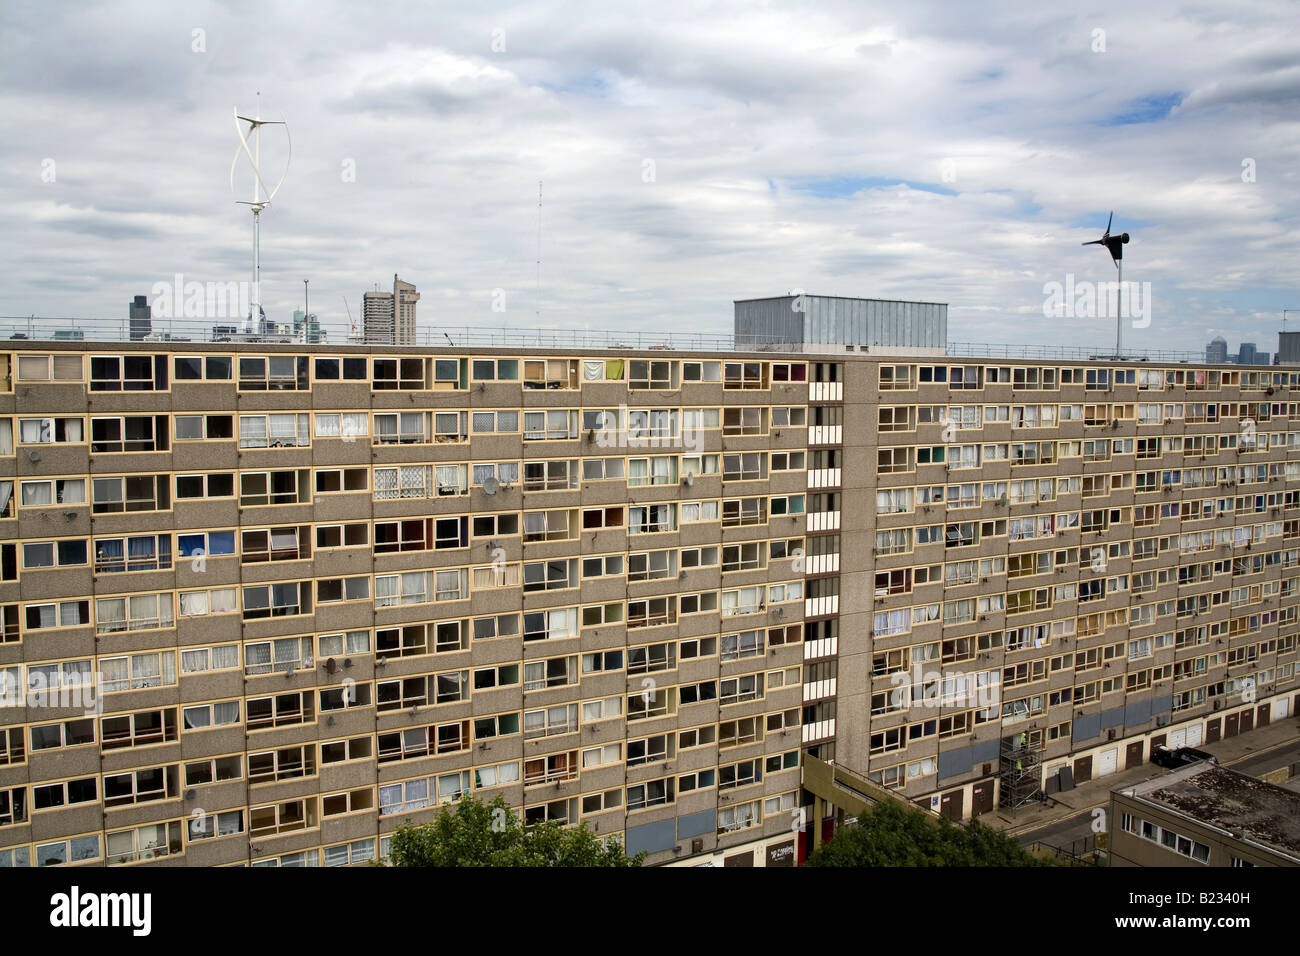 Vertical Axis Wind Turbines on top of a Council Estate in South London England Britain UK - Stock Image